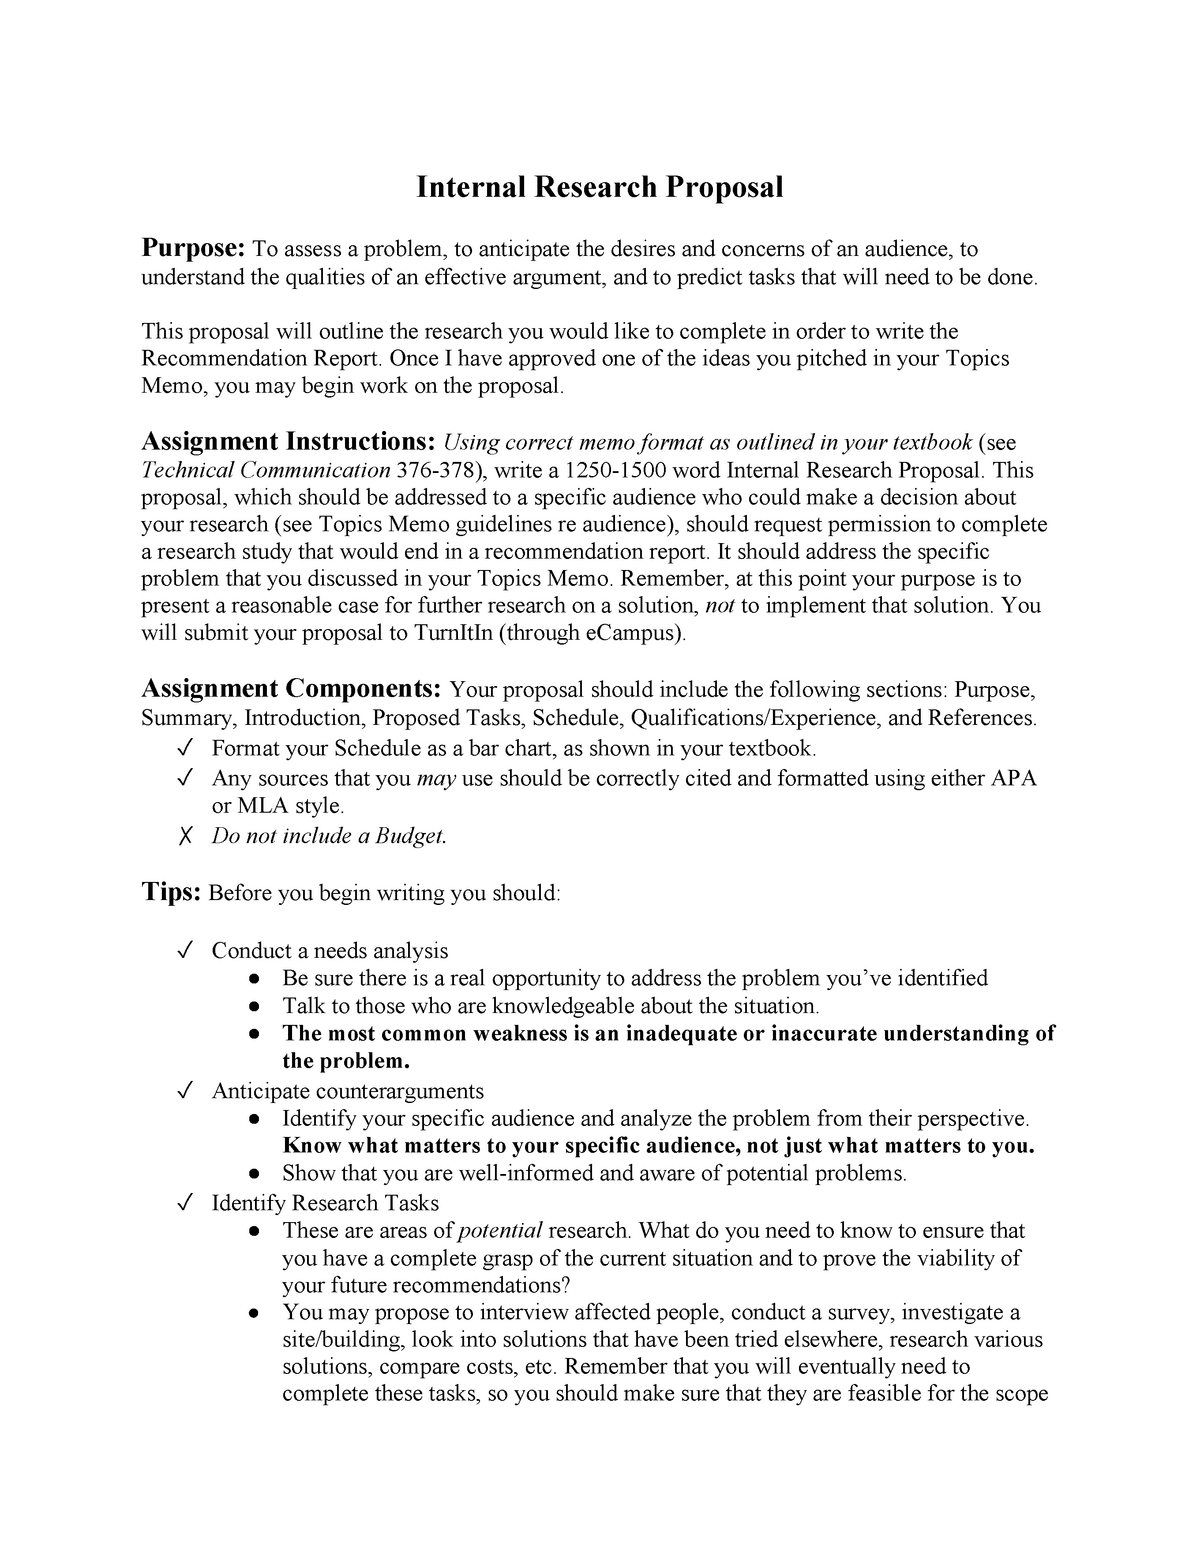 Internal Research Proposal Assignment Sheet - ENGL 210 - StuDocu